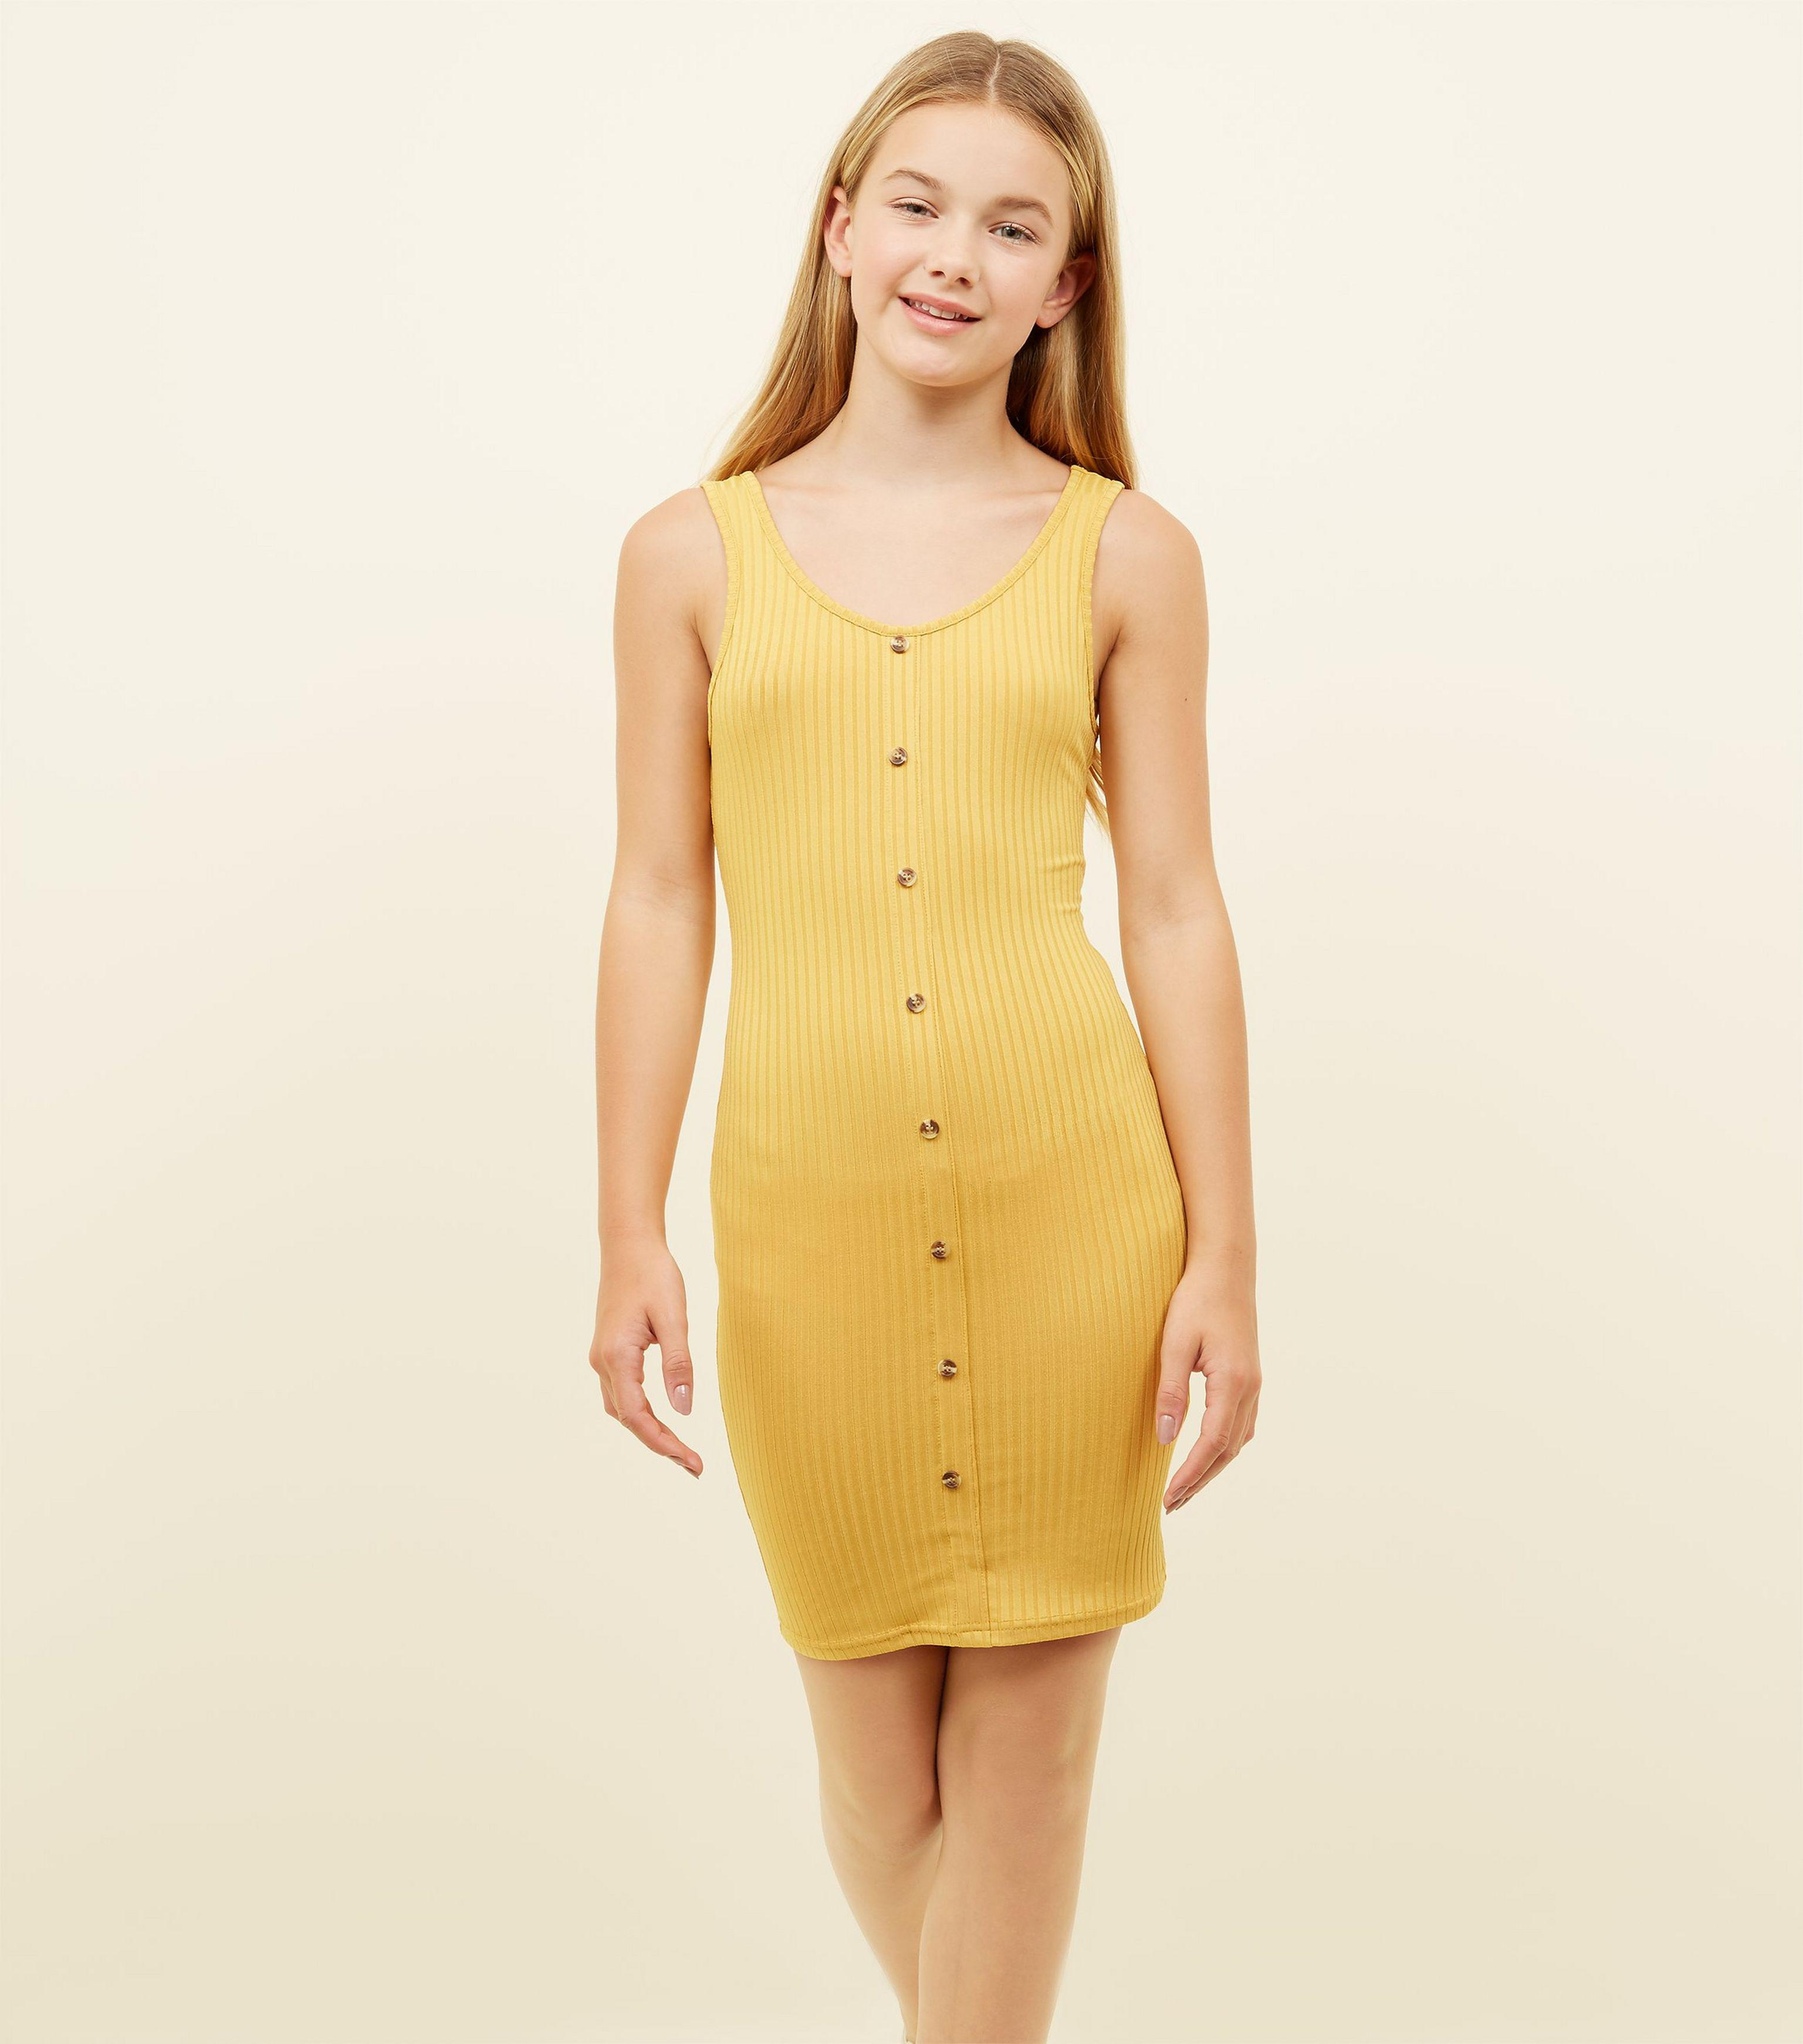 aa48cc51bbf New Look Girls Mustard Button Front Ribbed Bodycon Dress in Yellow ...